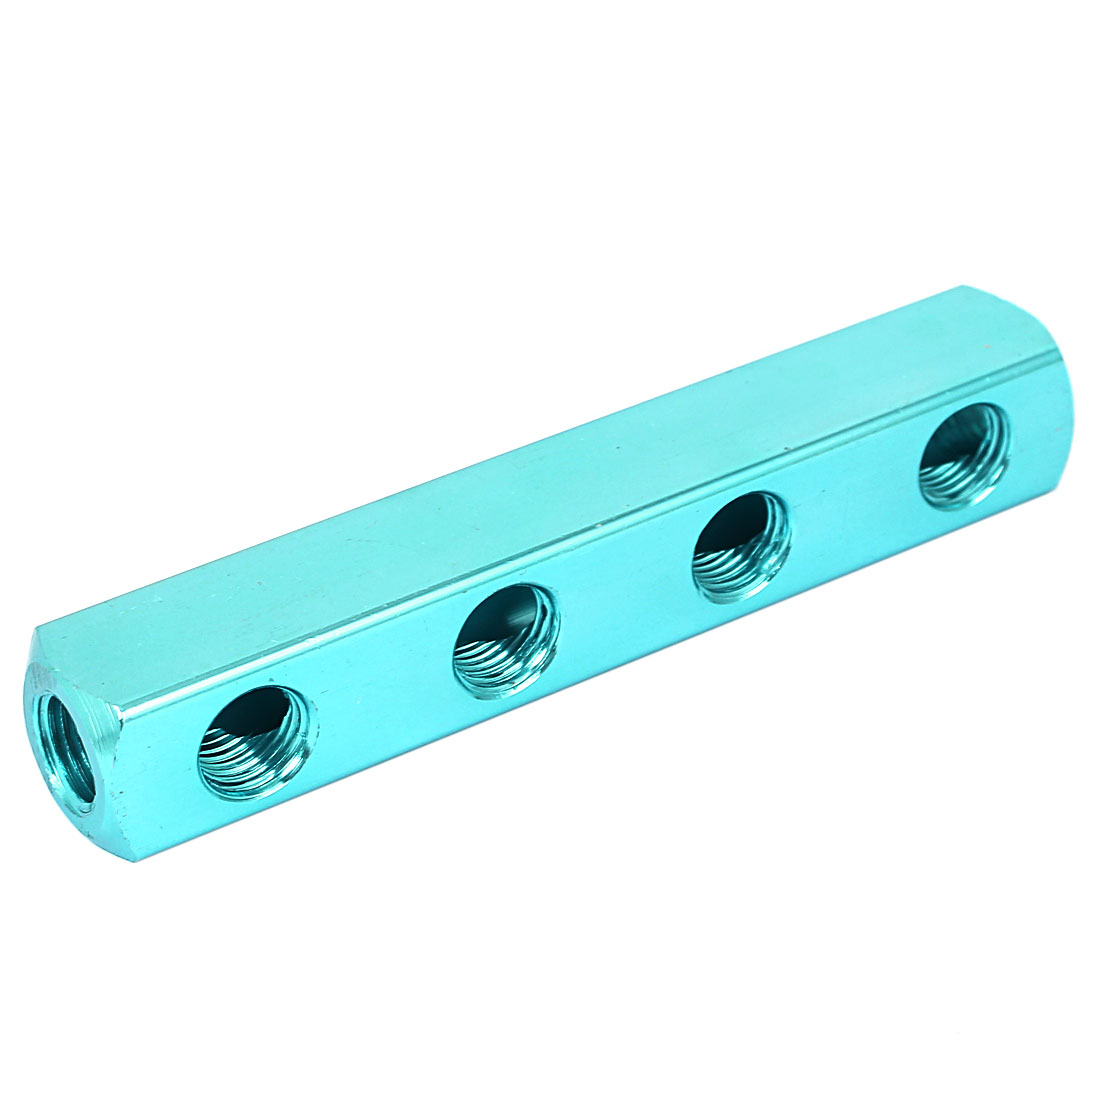 Aluminum Quick Connect 4 Outlet Ways 8 Ports Air Manifold Splitter Teal Blue